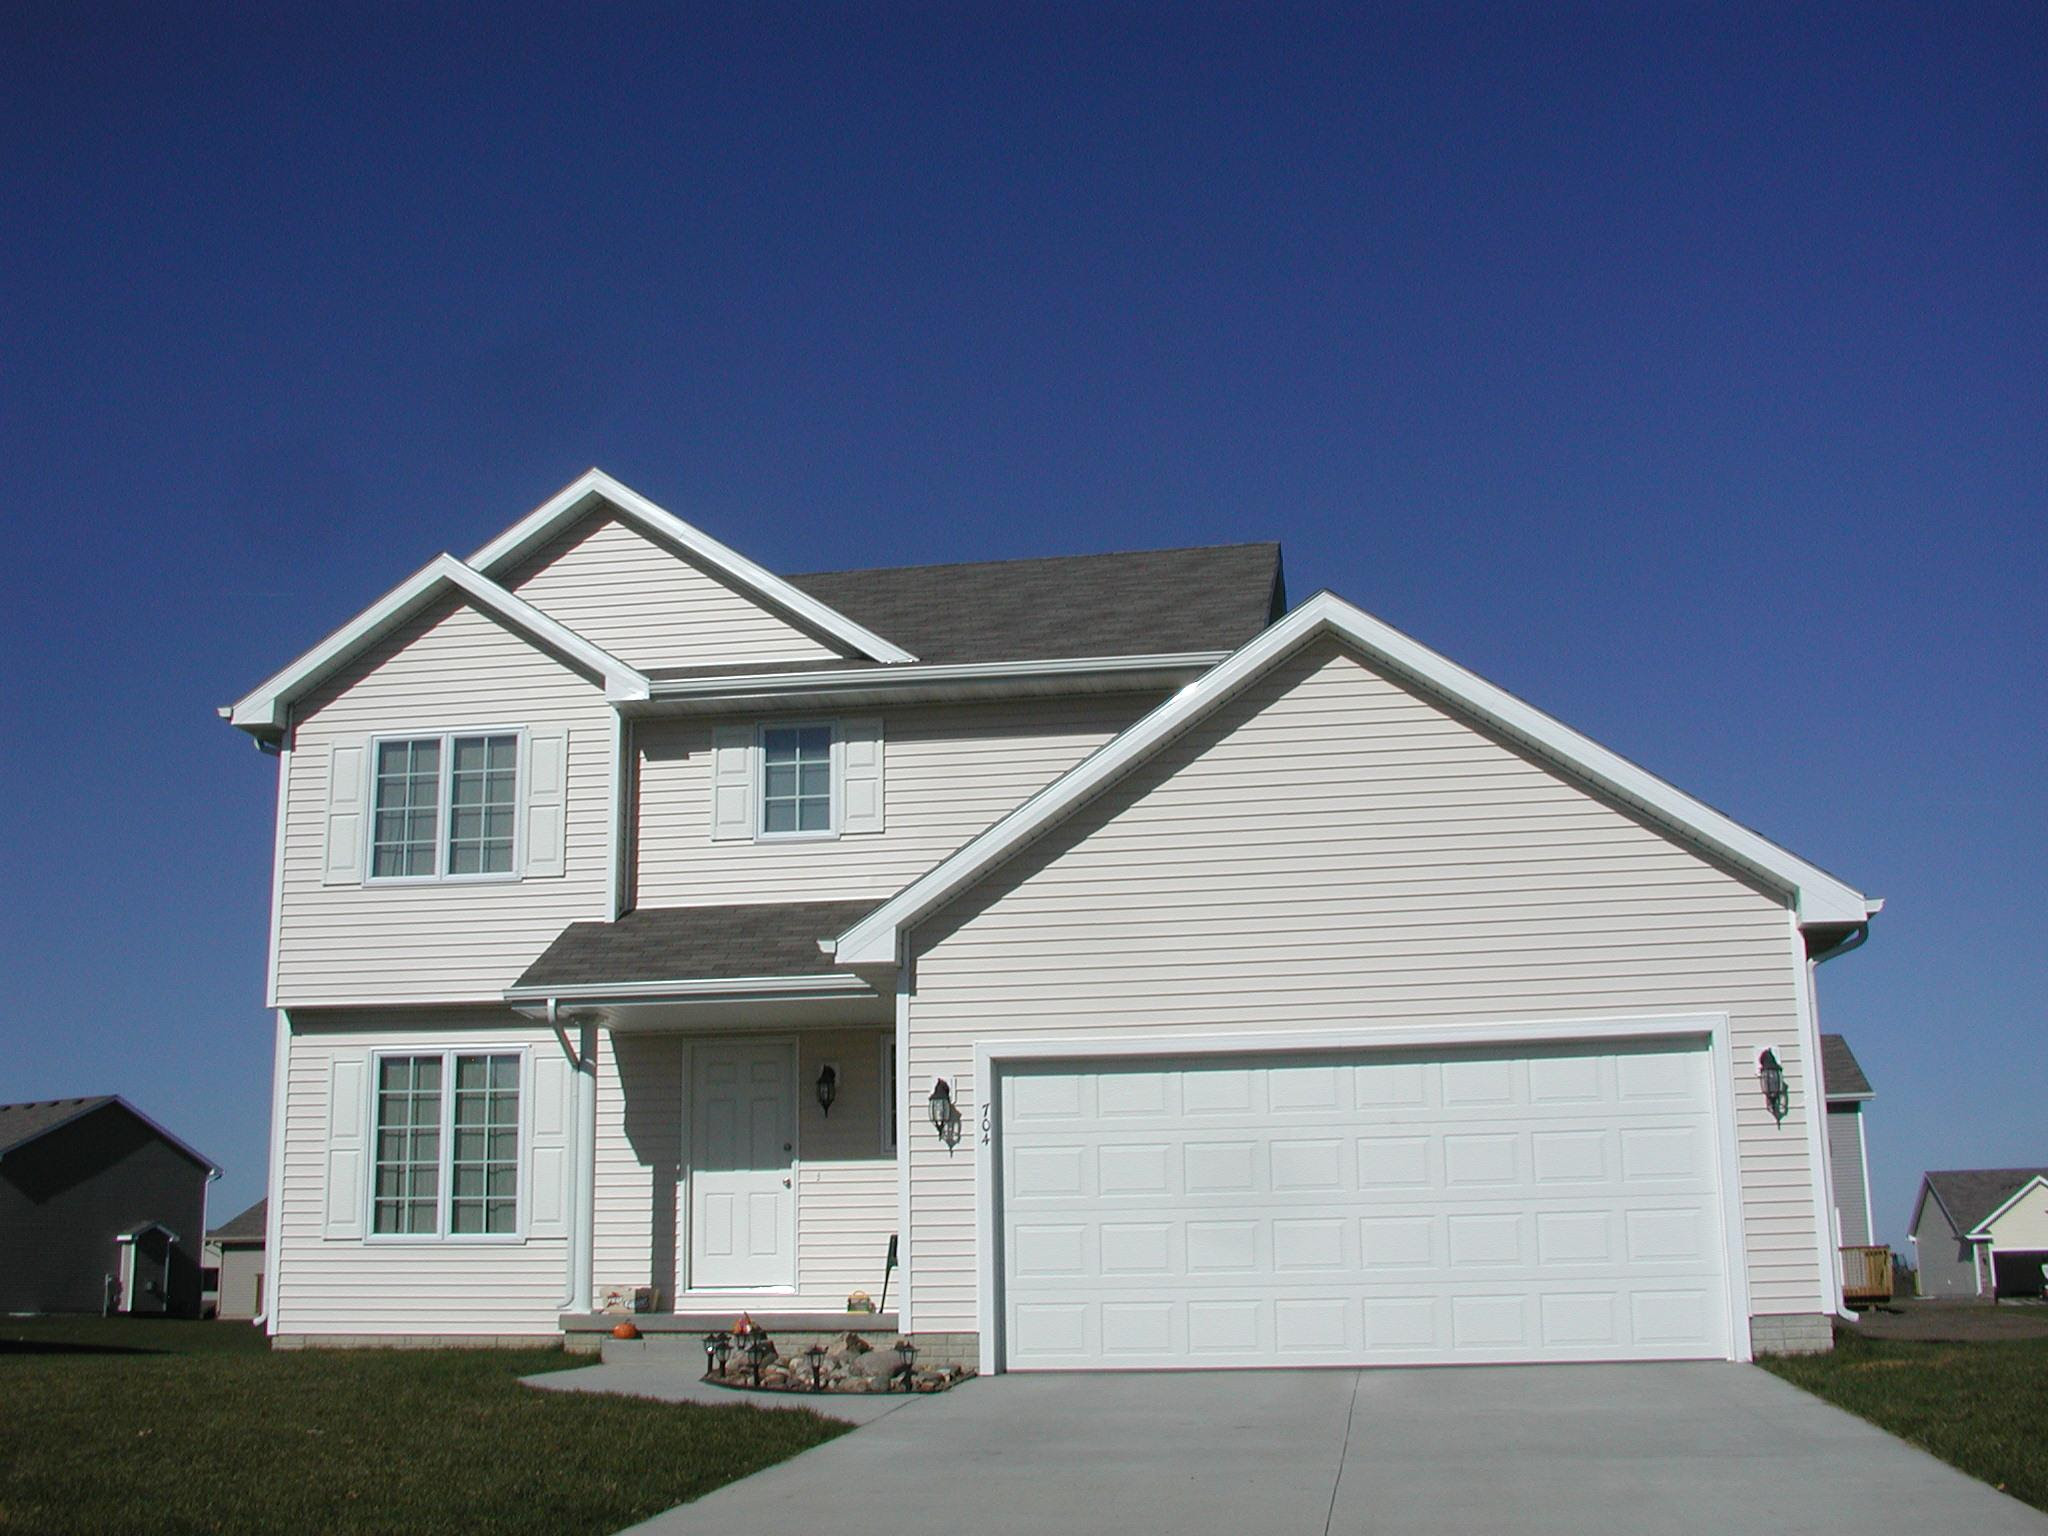 Ankeny, Iowa IA For Sale By Owner, Iowa FSBO Home in Ankeny IA, SW 50TH ST ForSaleByOwner Home